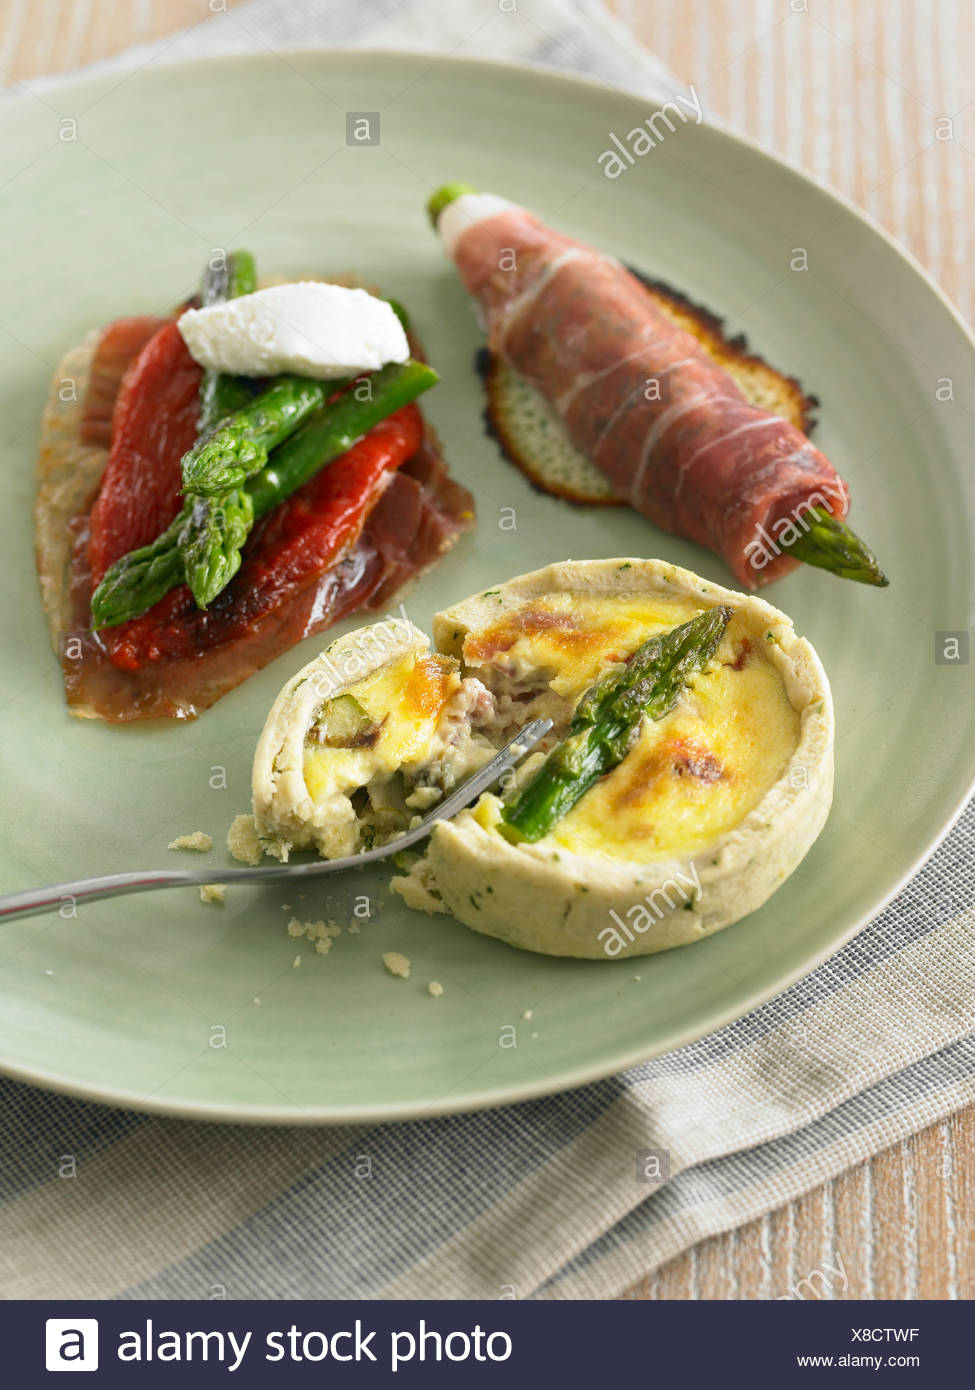 Trio of starters on plate, asparagus wrapped in smoked parma ham, asparagus tart, and parma ham with red peppers and asparagus - Stock Image